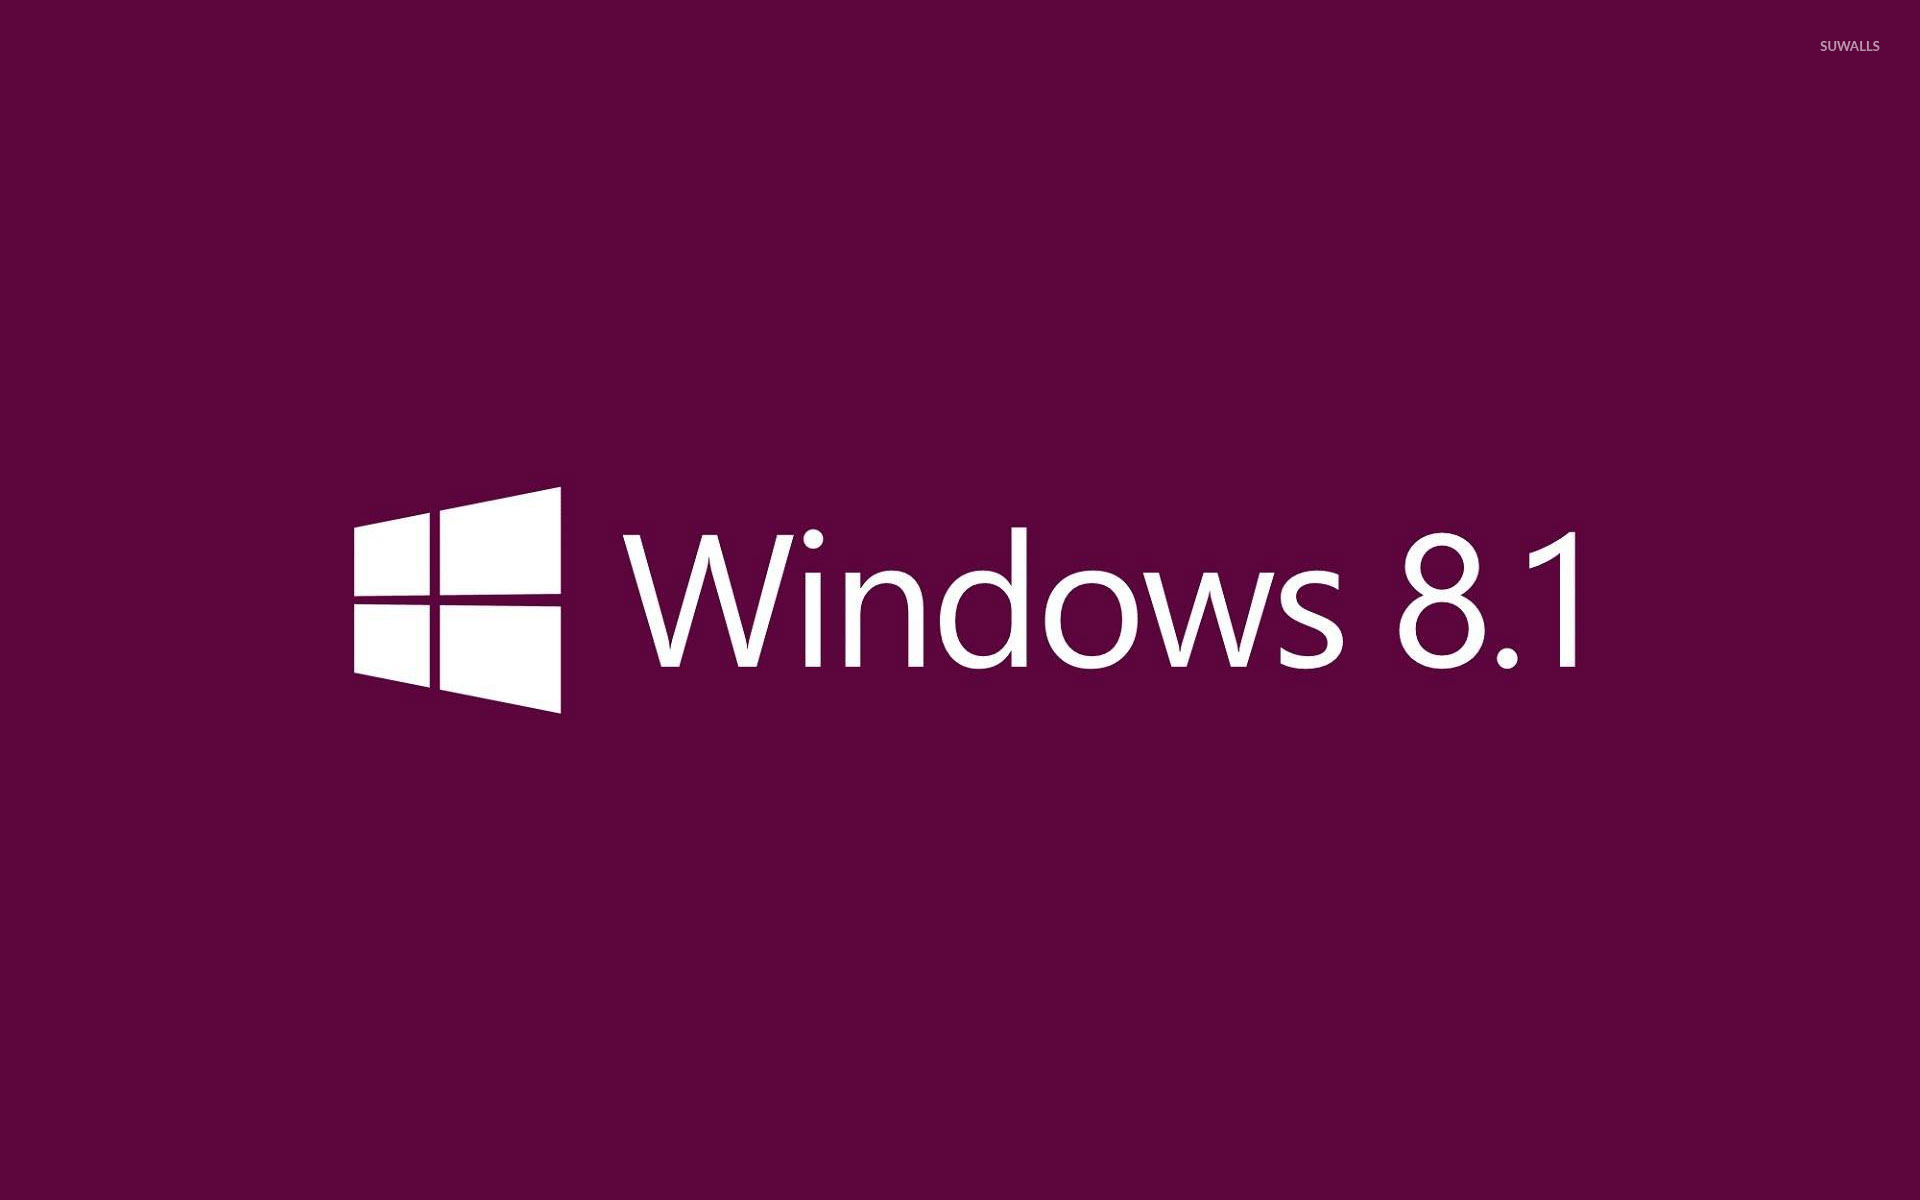 Windows 8.1 Wallpapers For Laptop